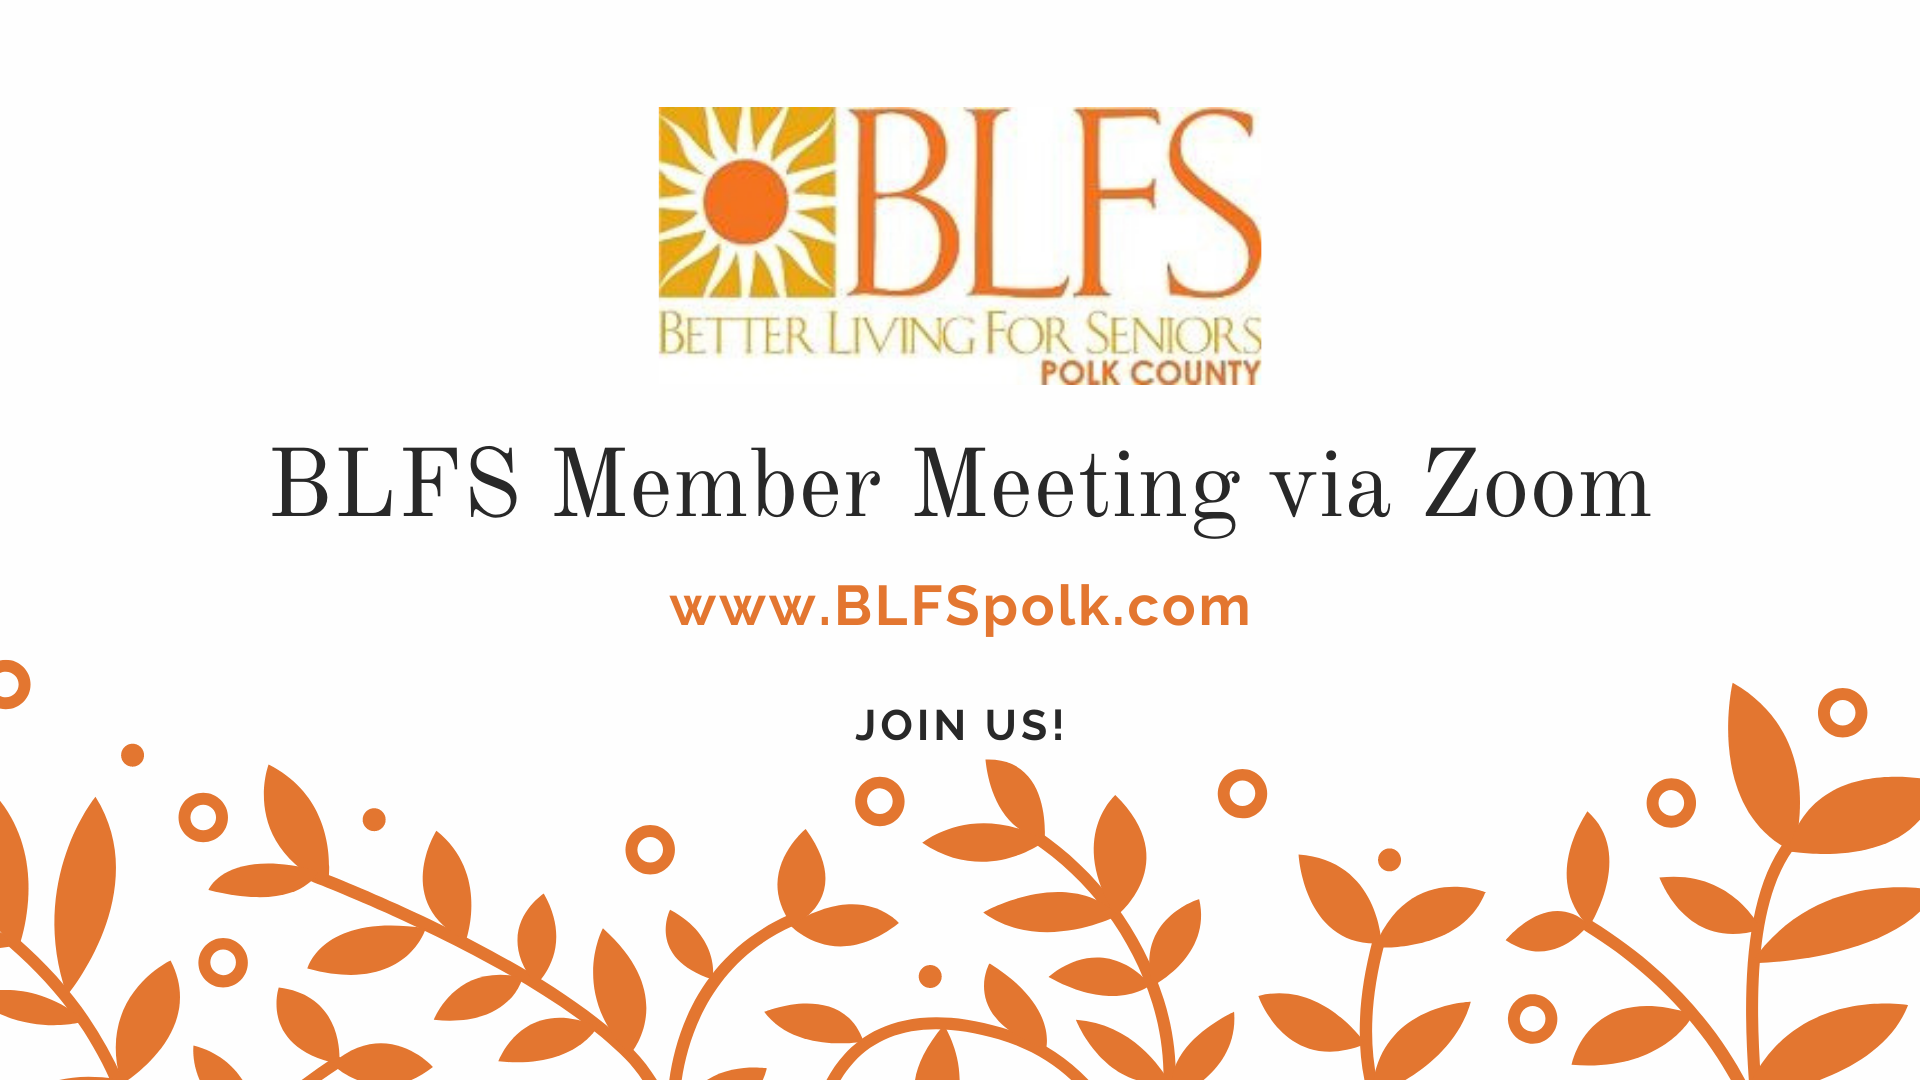 February 2021 Monthly Member Meeting - Join via Emailed Zoom Link